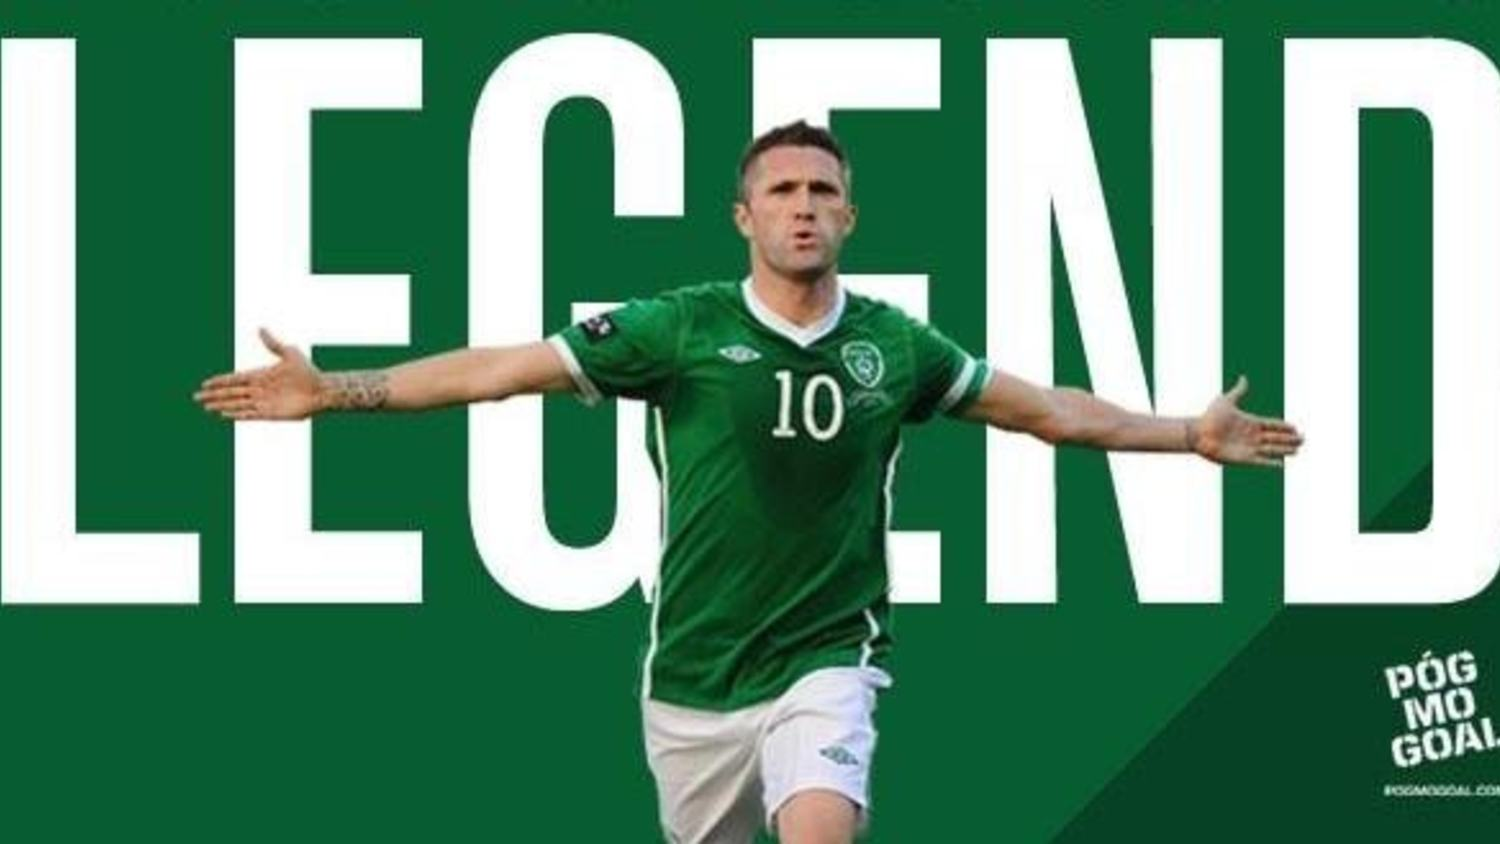 Mythbusters: Why Critics of Robbie Keane Were Wrong